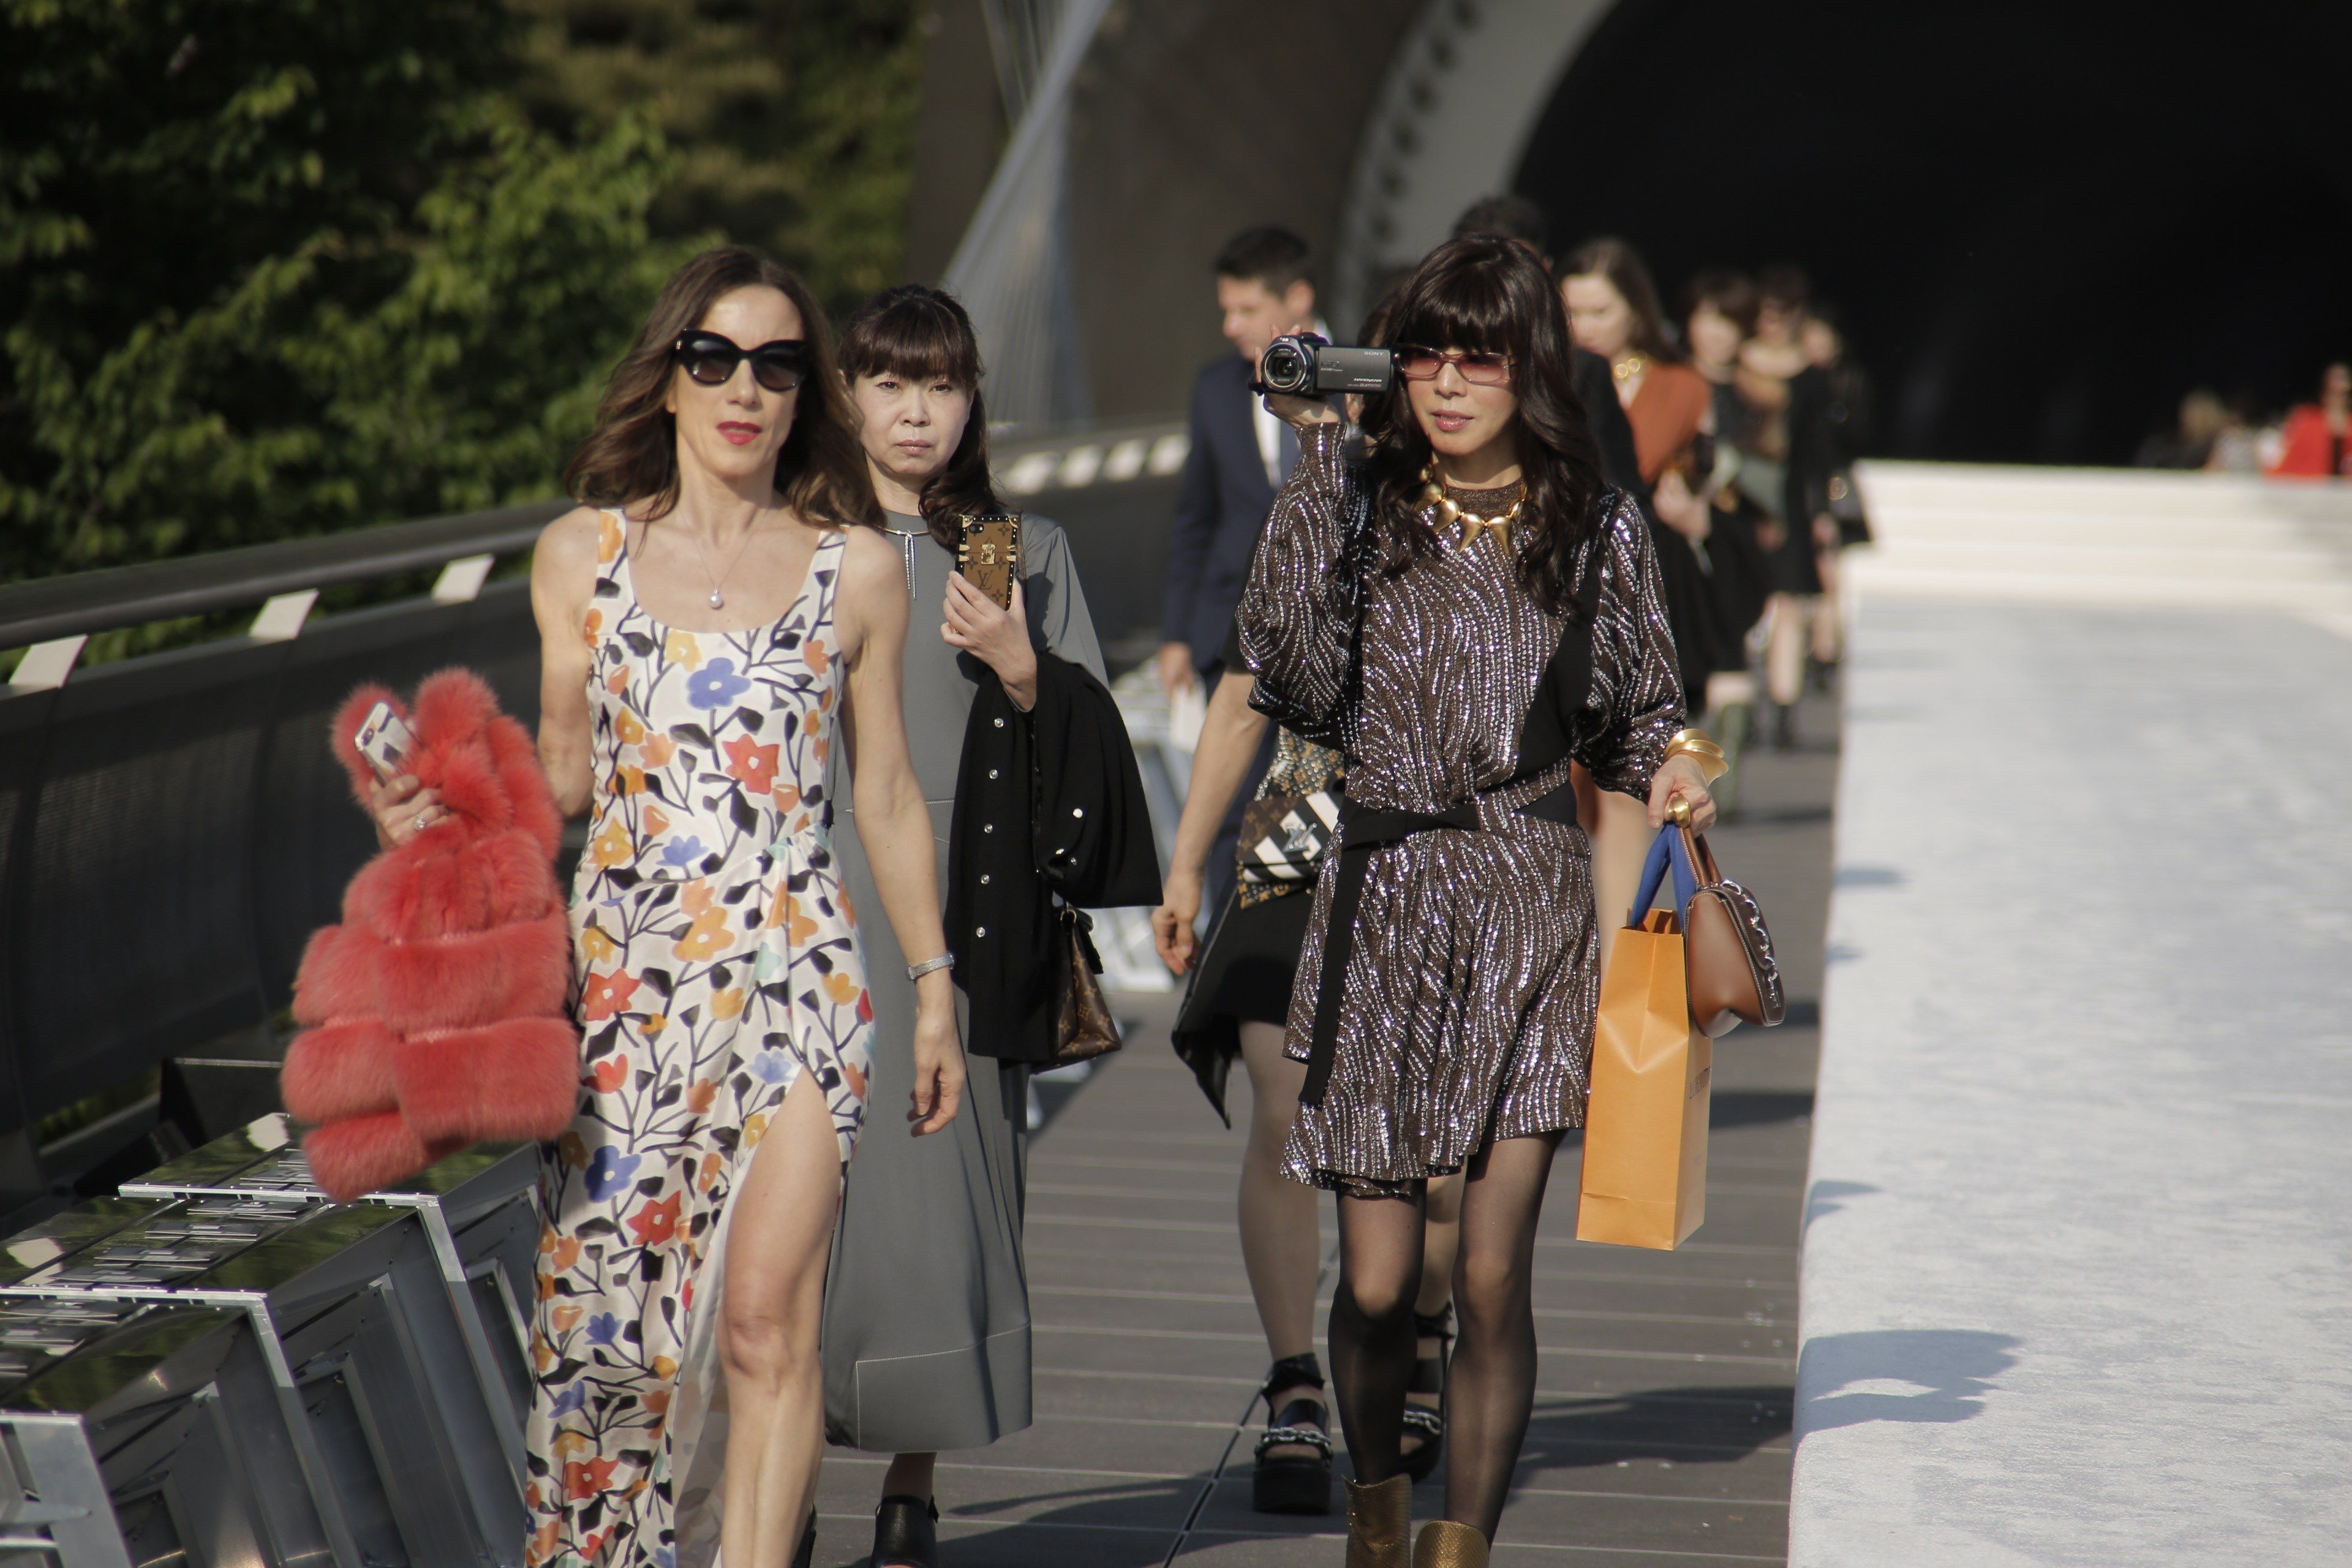 Inside Louis Vuitton's Lush Kyoto Show, From the Front Row to the Geis Photos | W Magazine